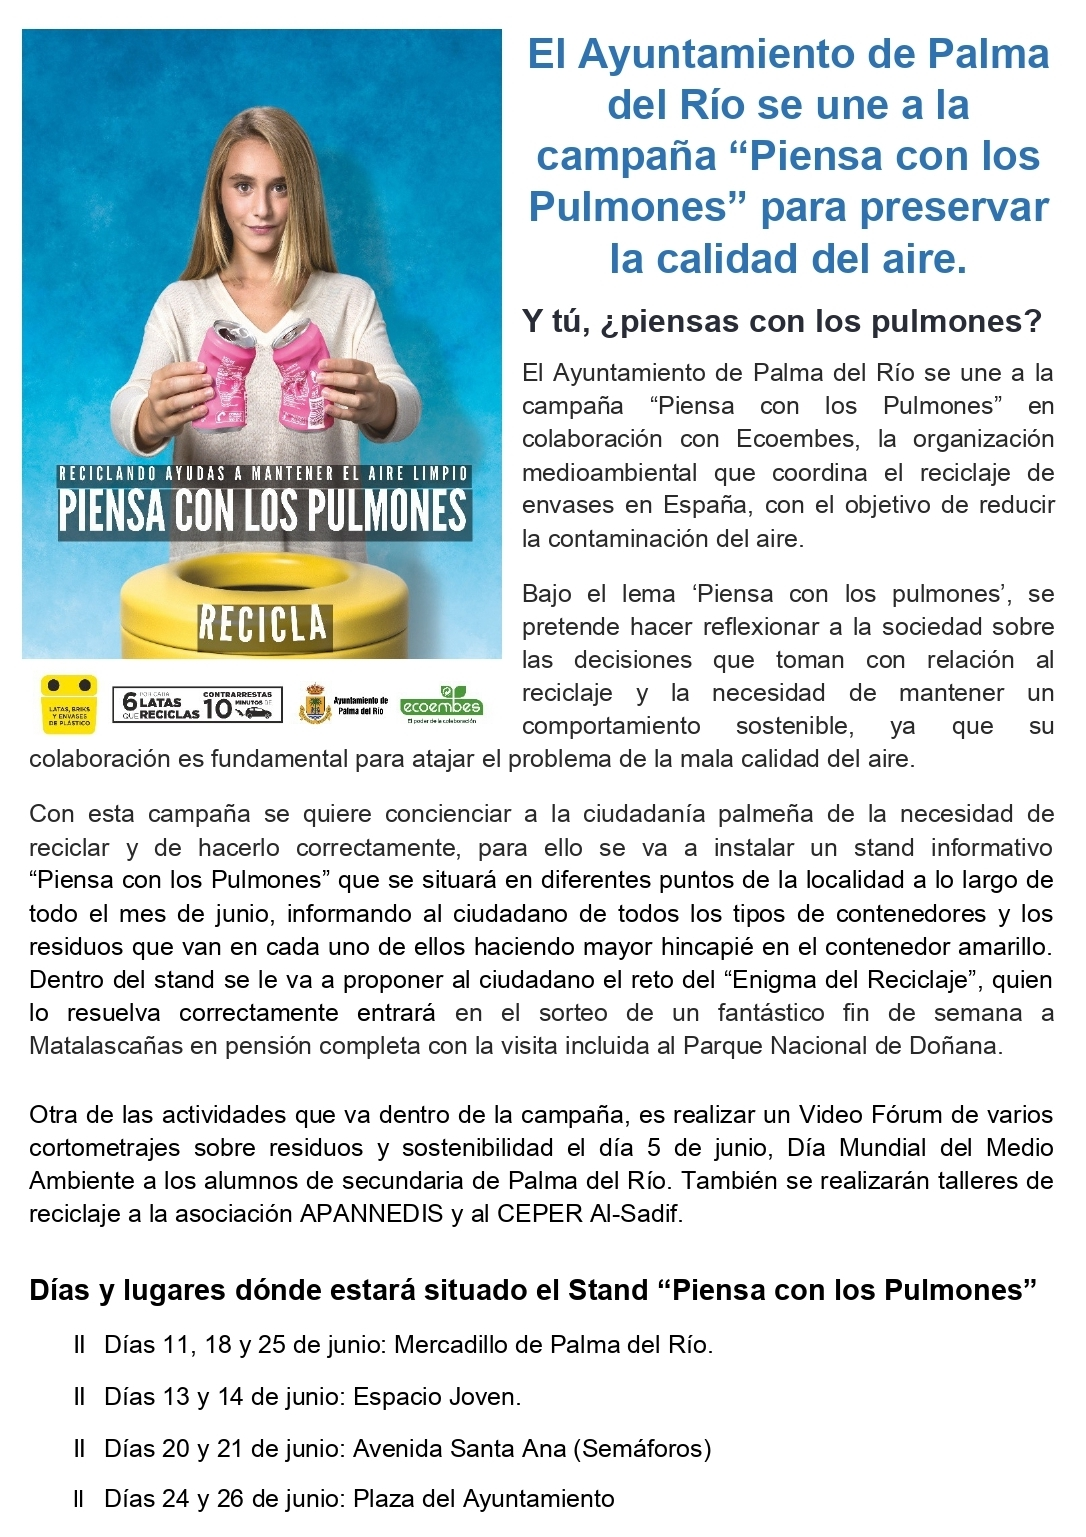 https://www.palmadelrio.es/sites/default/files/nuevo.campana_piensa_con_los_pulmones.jpg